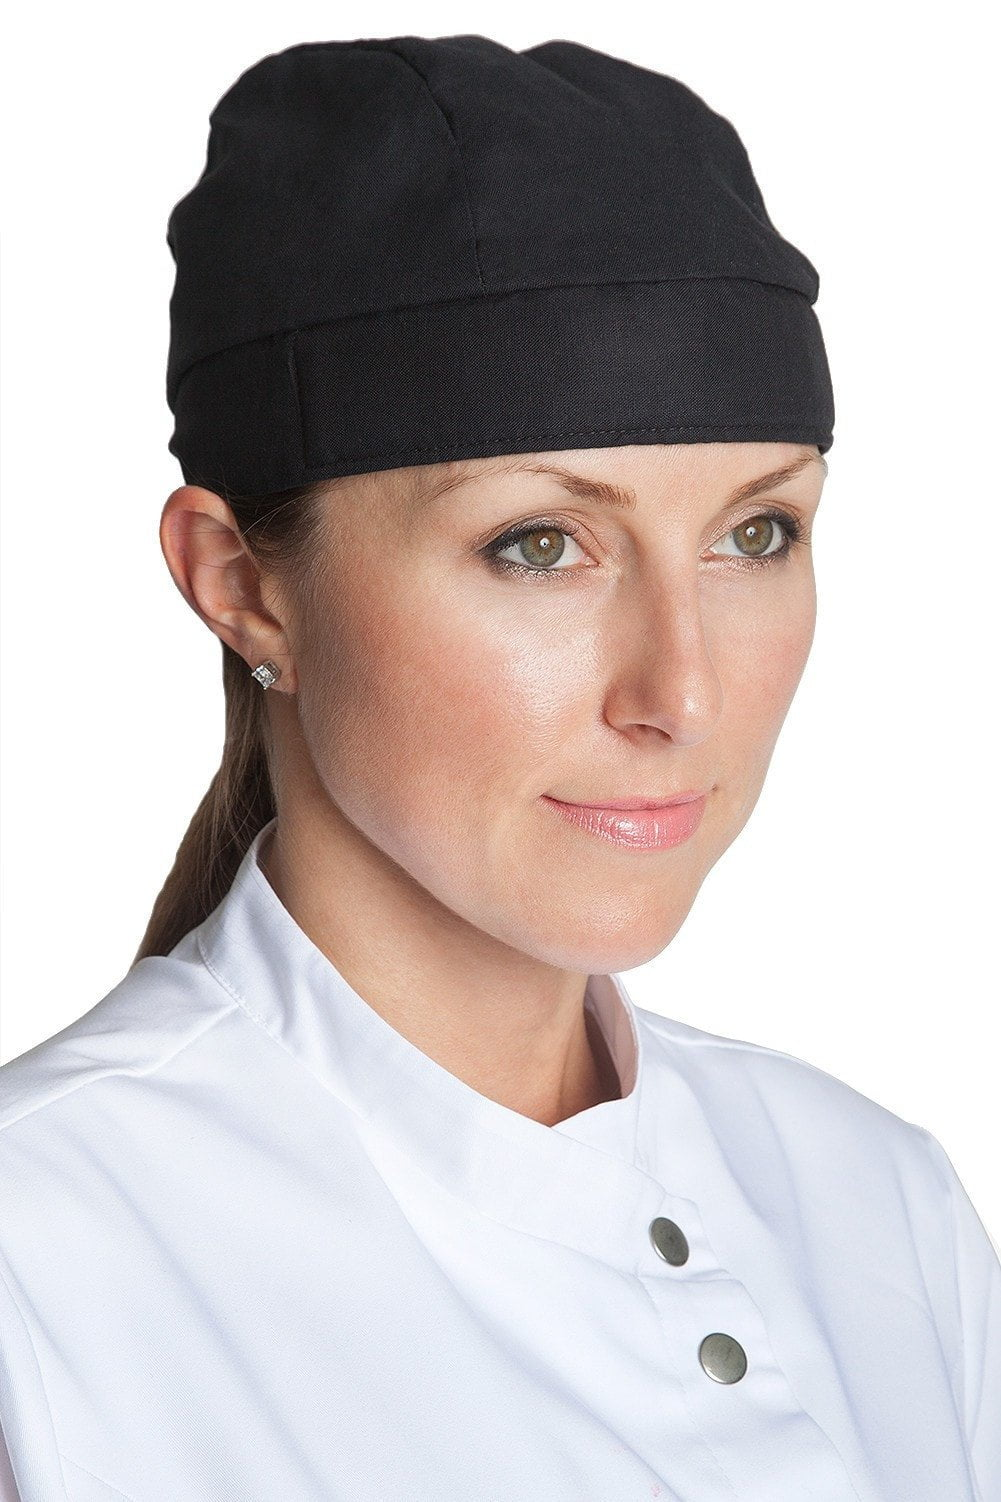 Deluxe Chef Head Wrap Black